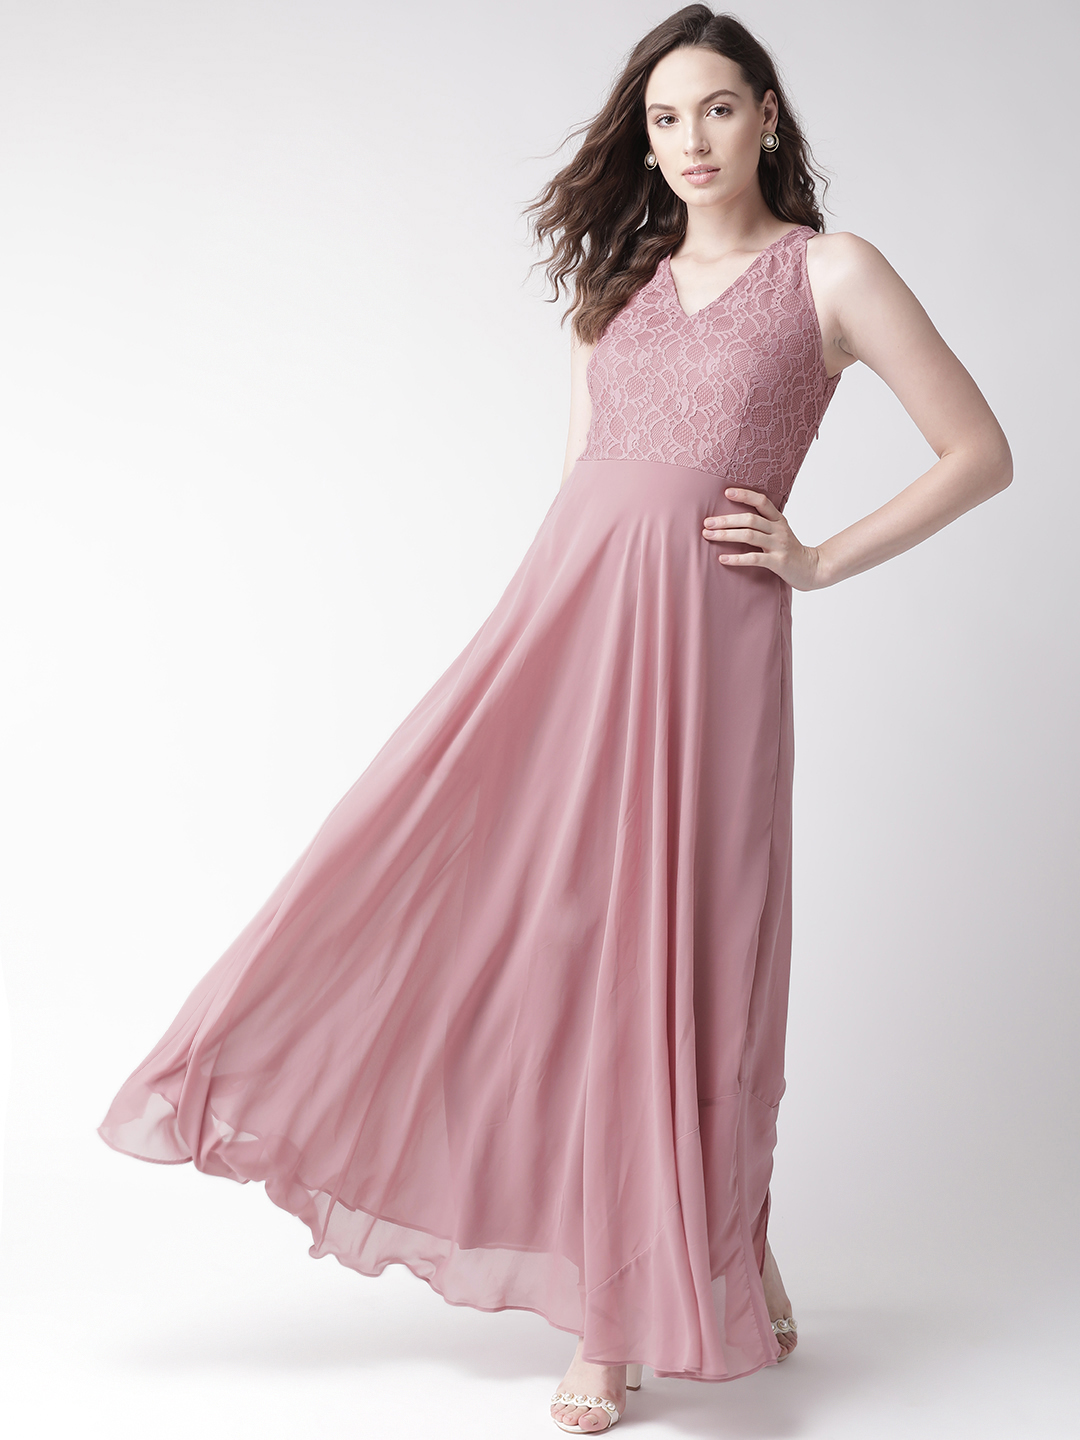 Dresses-Pink All About That Lace Dress1